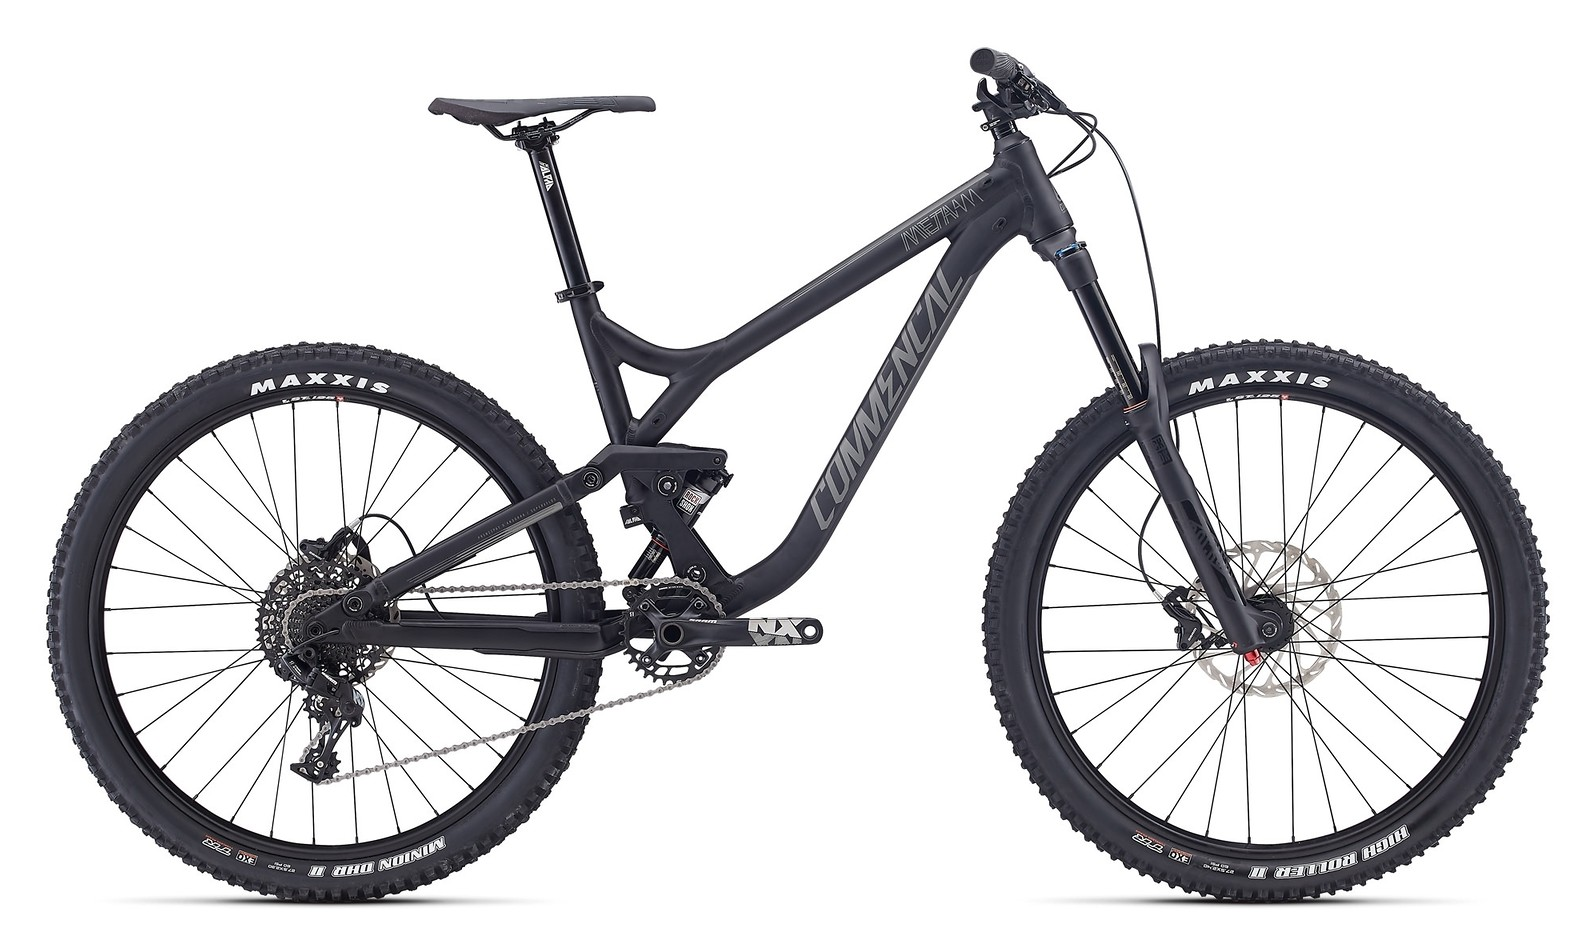 2017 Commencal Meta AM V3 Origin 650b black